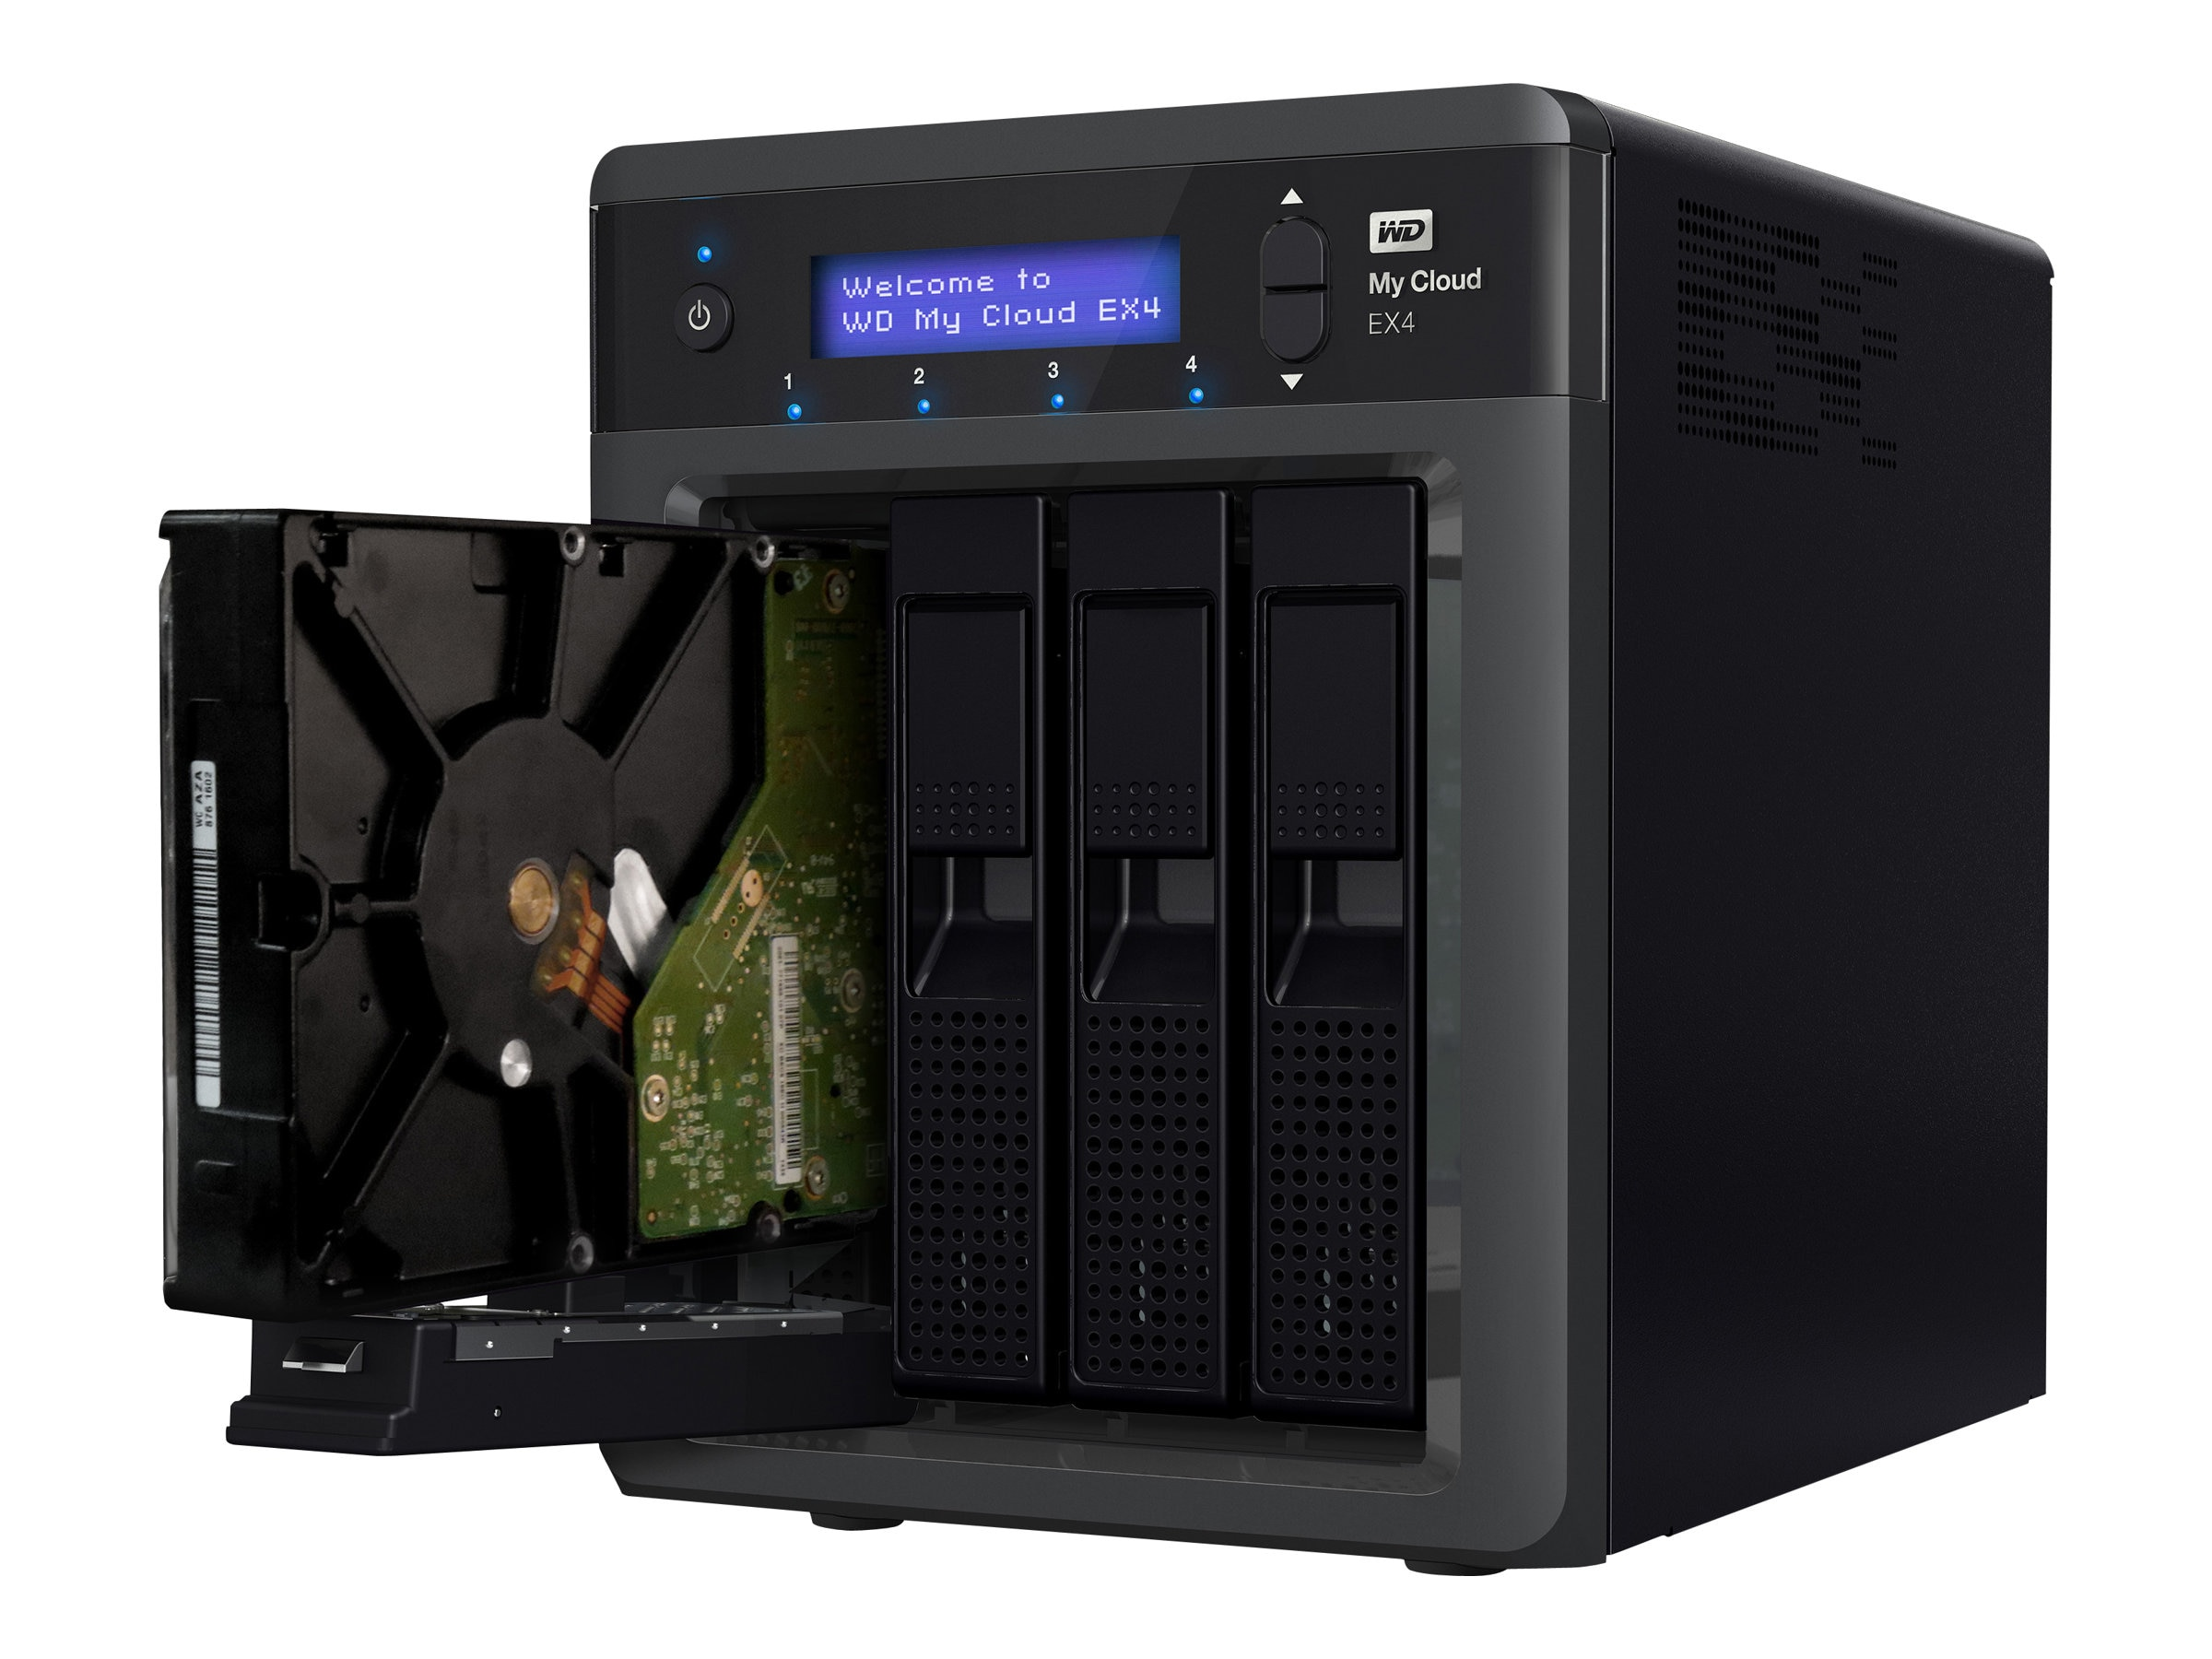 WD 12TB My Cloud EX4 Personal NAS